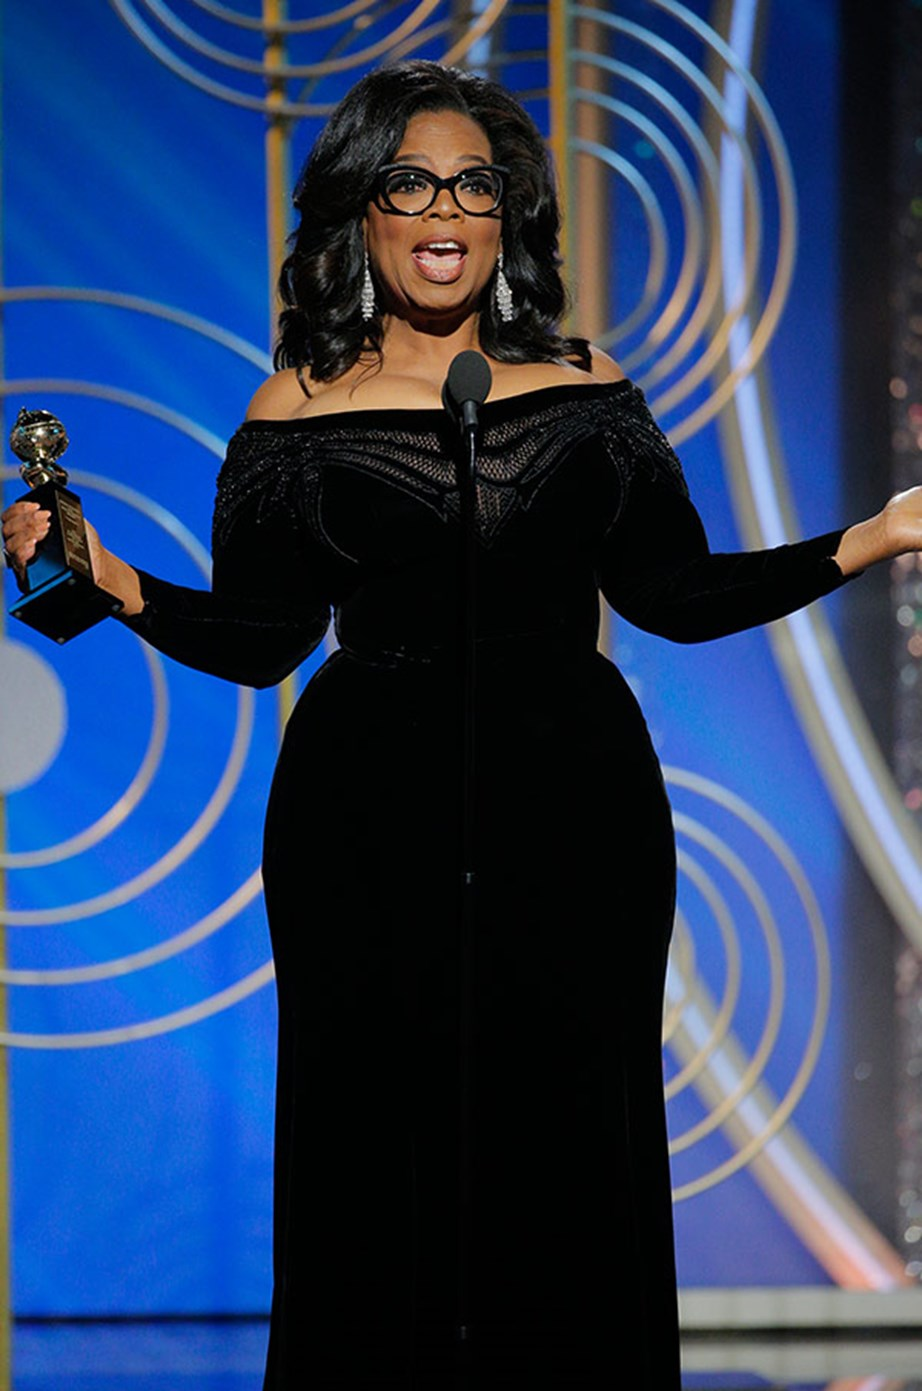 """It is not lost on me that, at this moment, there is some little girl watching as I become the first Black woman to be given the same award. It is an honour and it is a privilege to share the evening with all of them."""